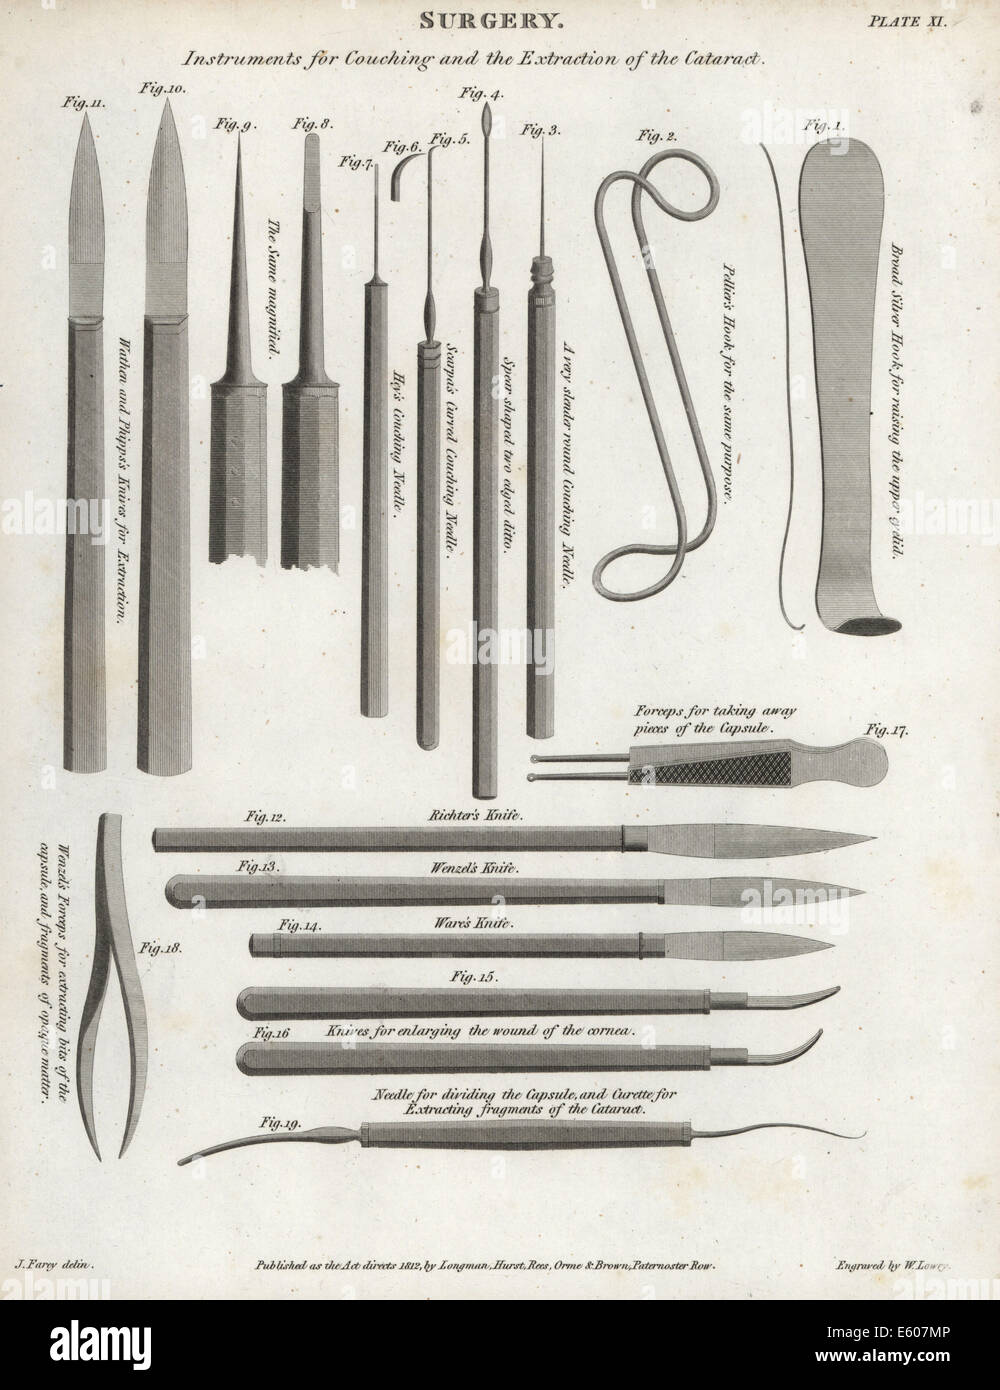 Surgical equipment for couching and the extraction of the cataract. - Stock Image